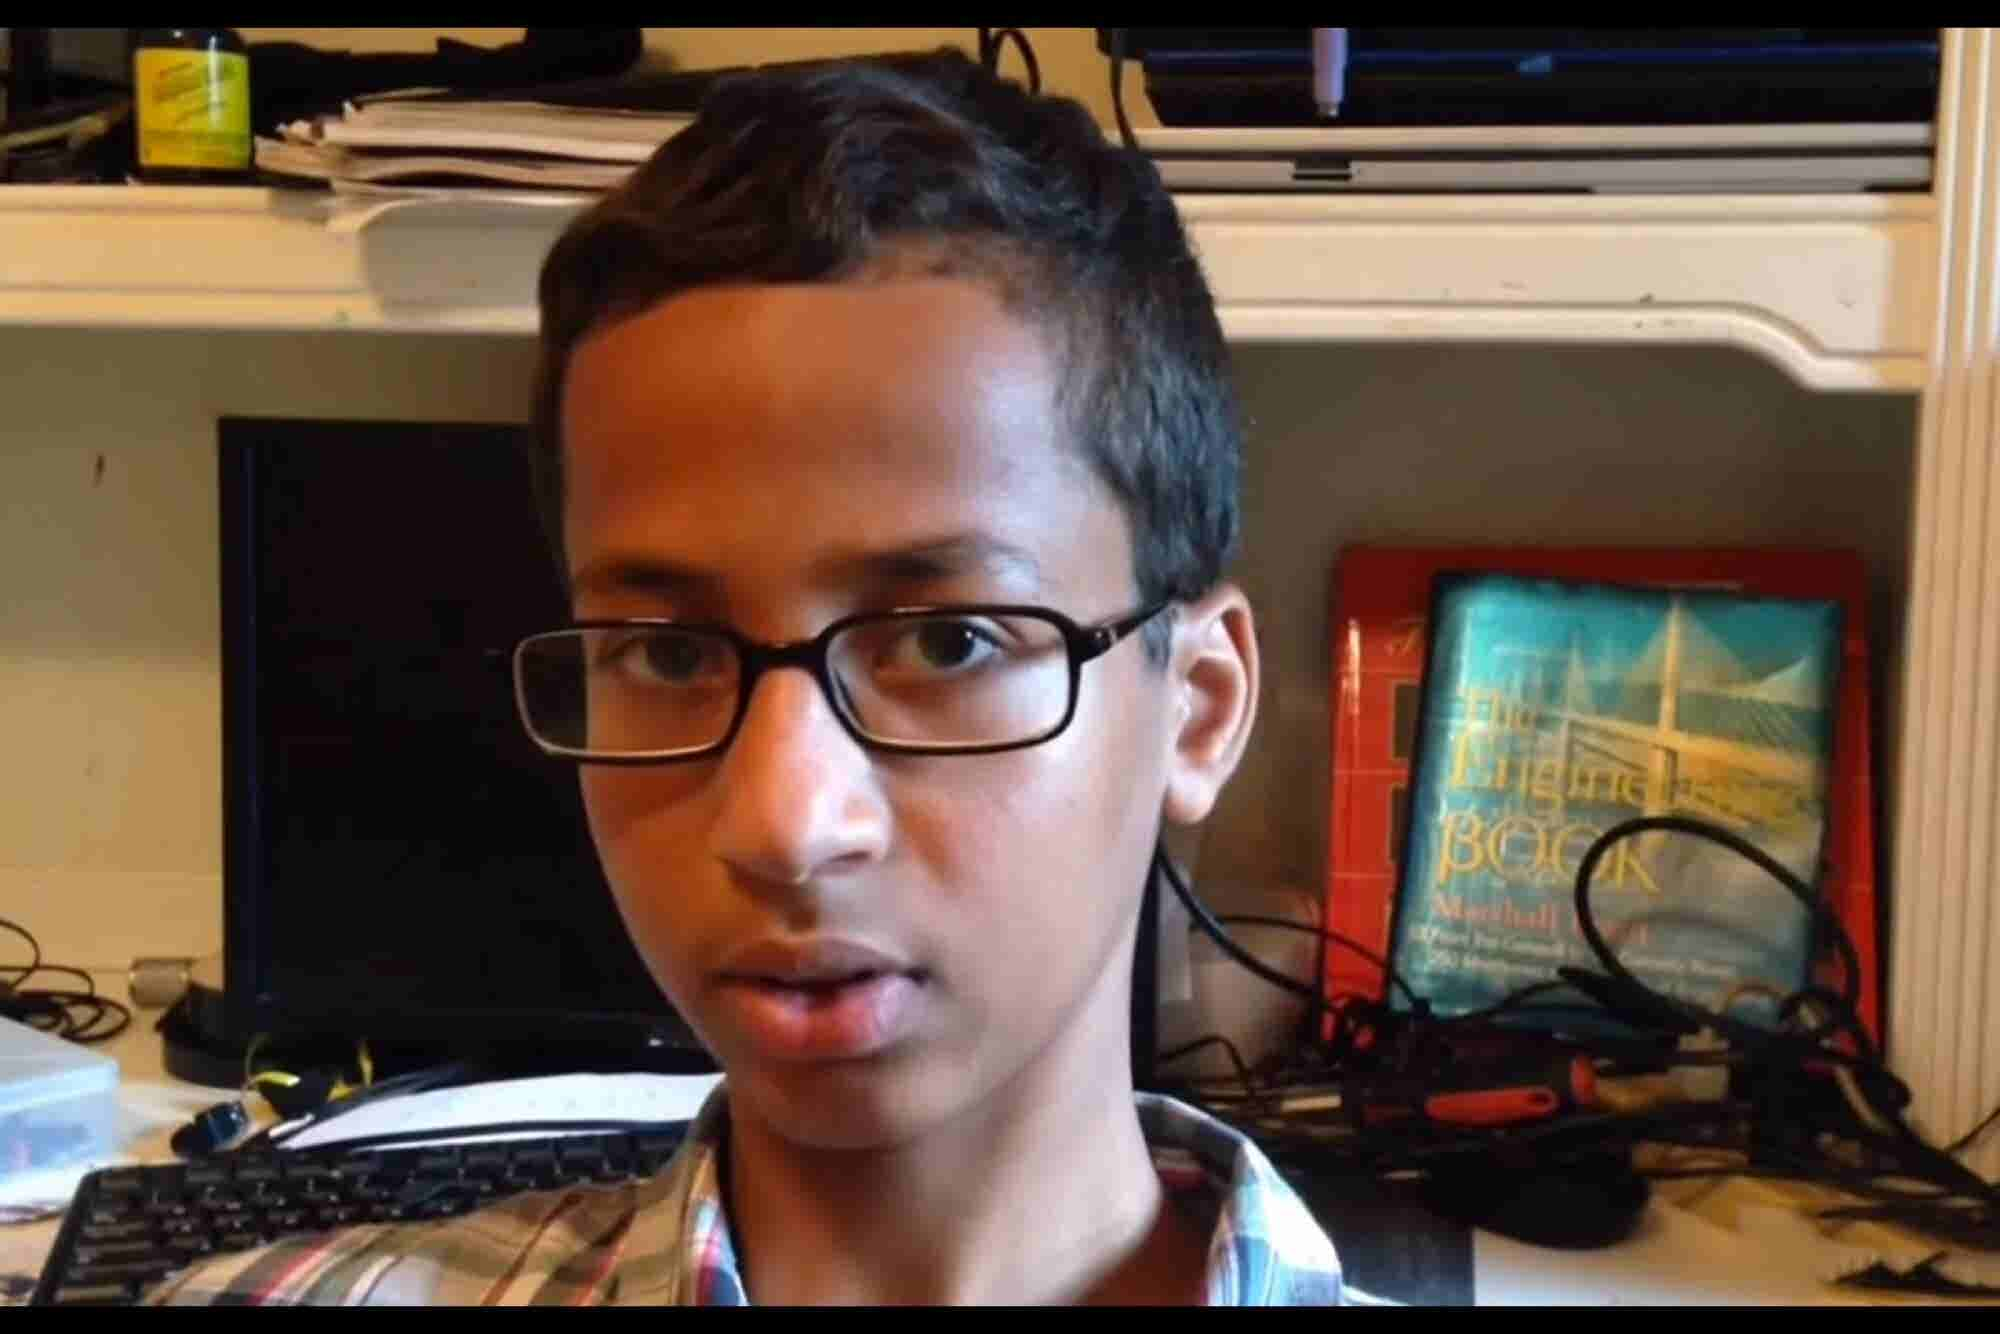 Why This 14-Year-Old Student Was Arrested Over a Clock